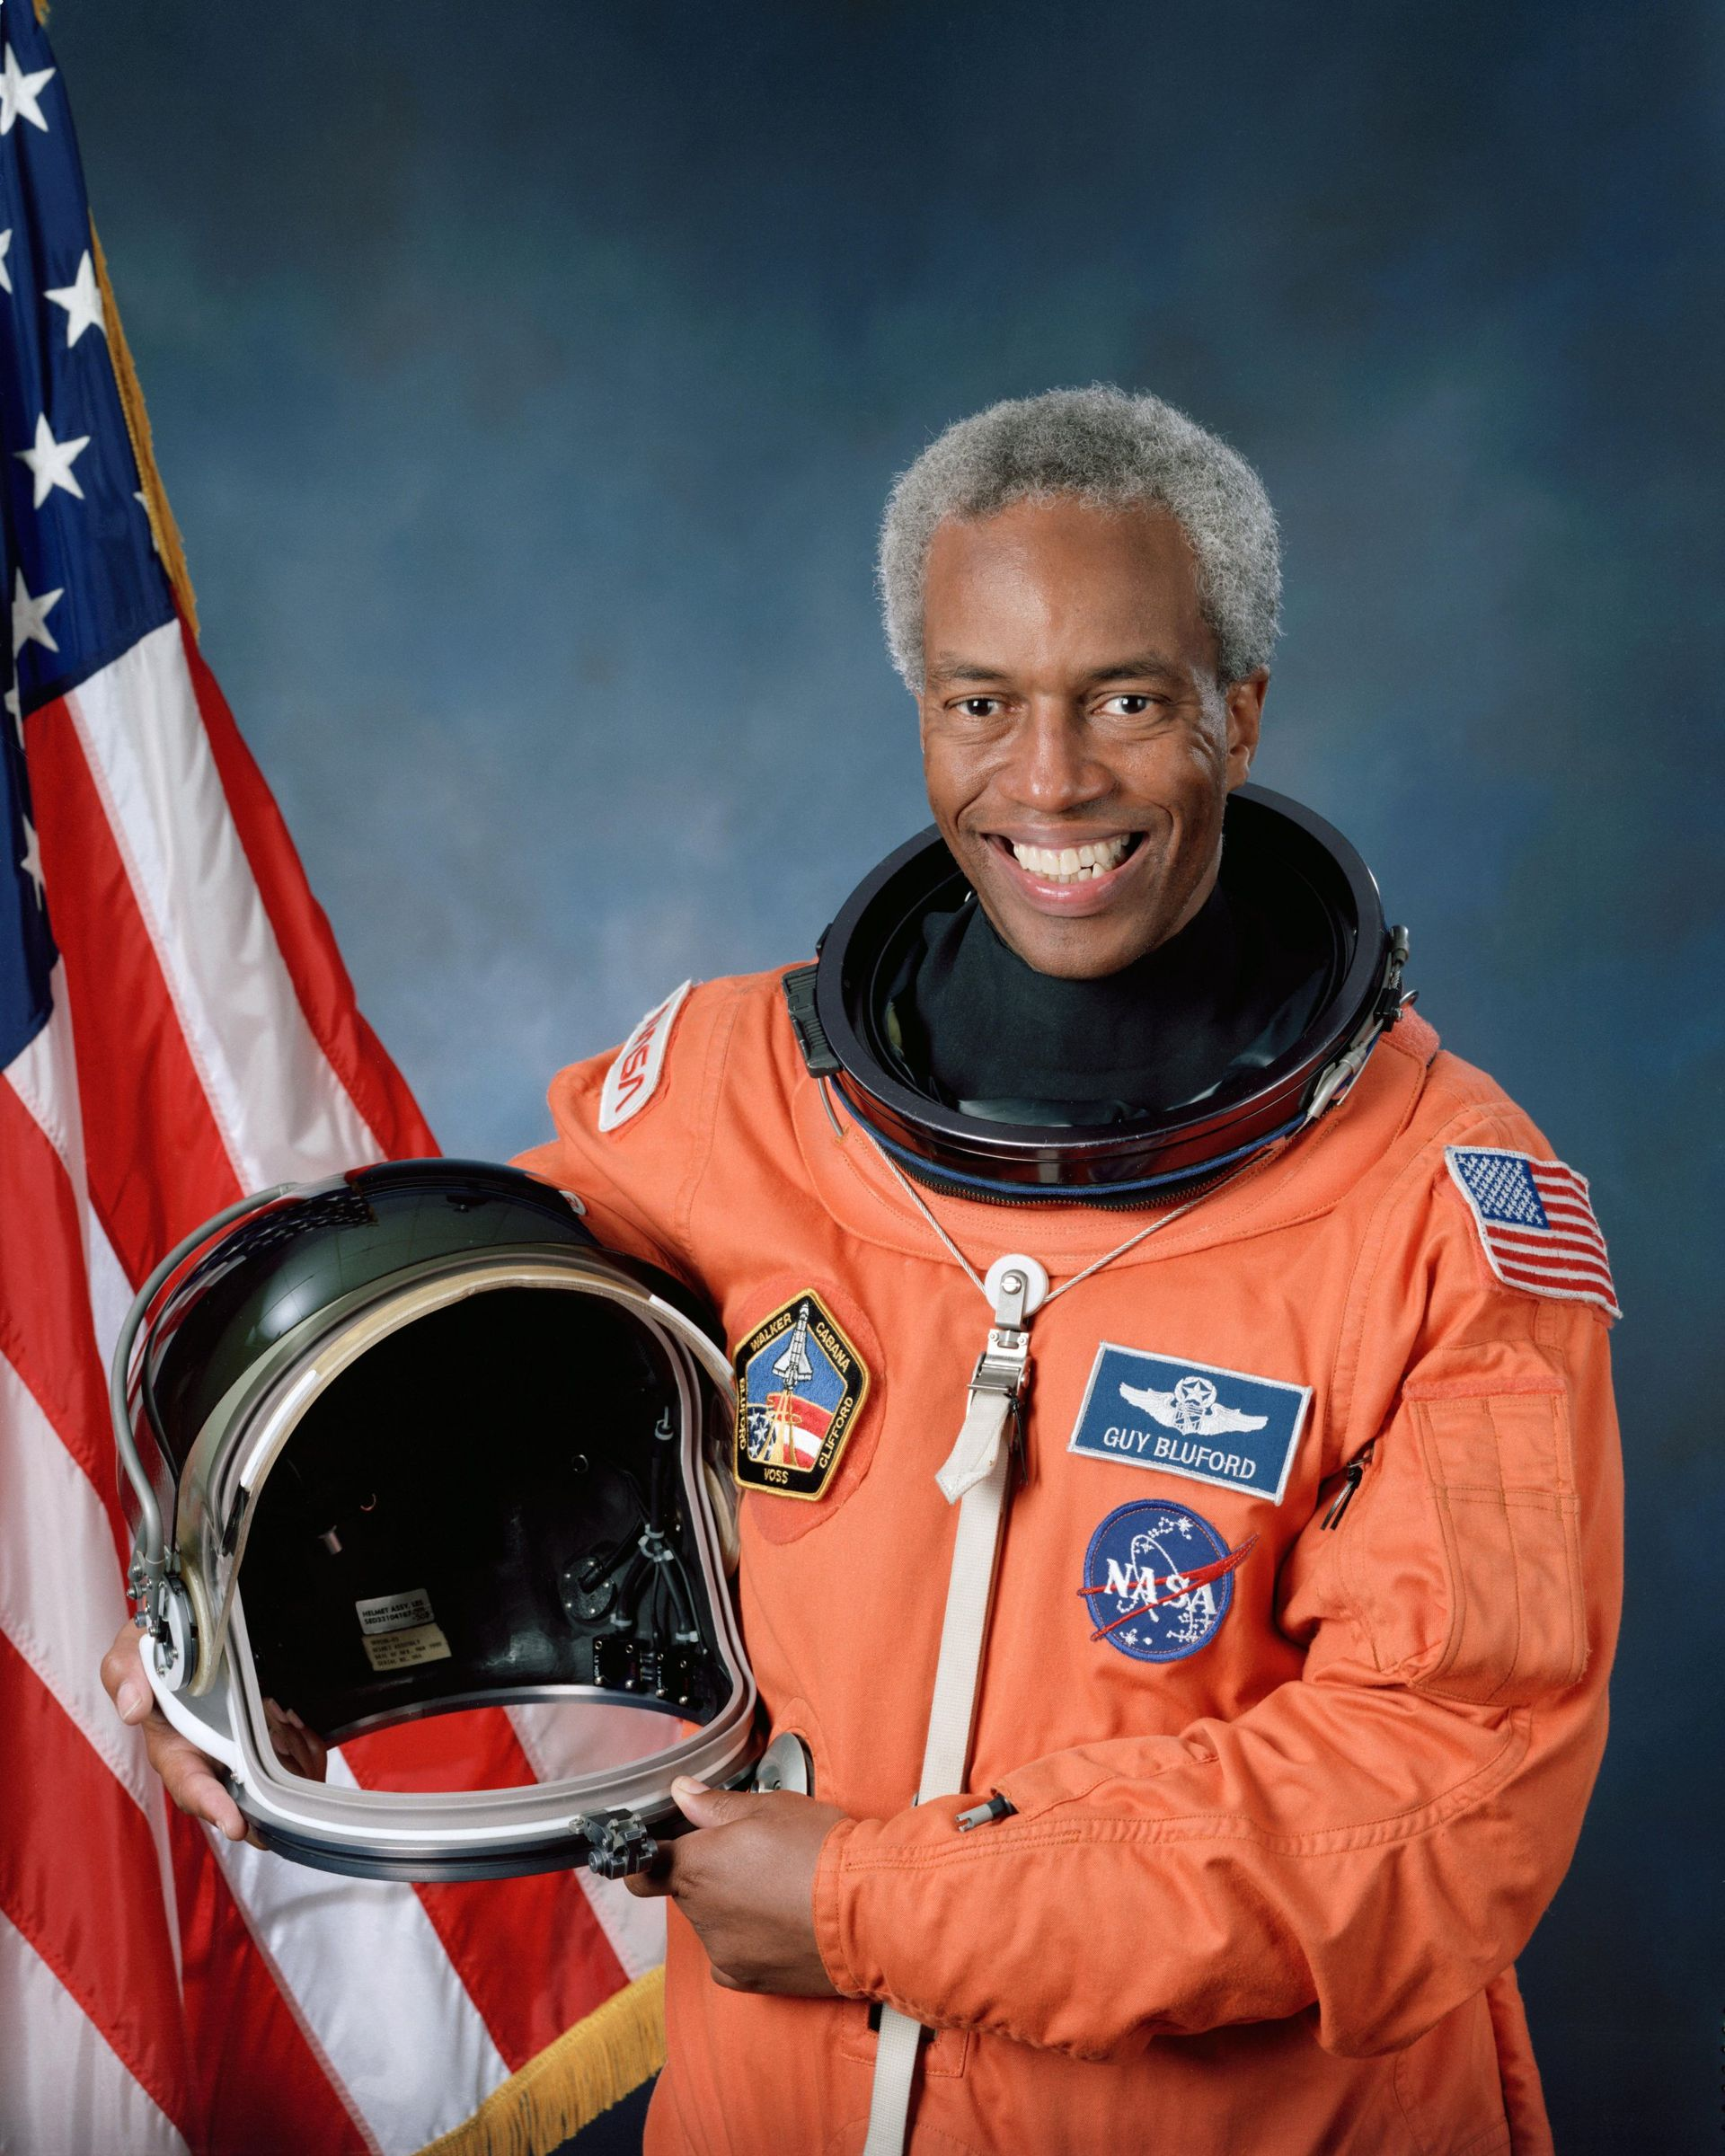 Astronaut Guion S. Bluford. Bluford, October 13, 1992